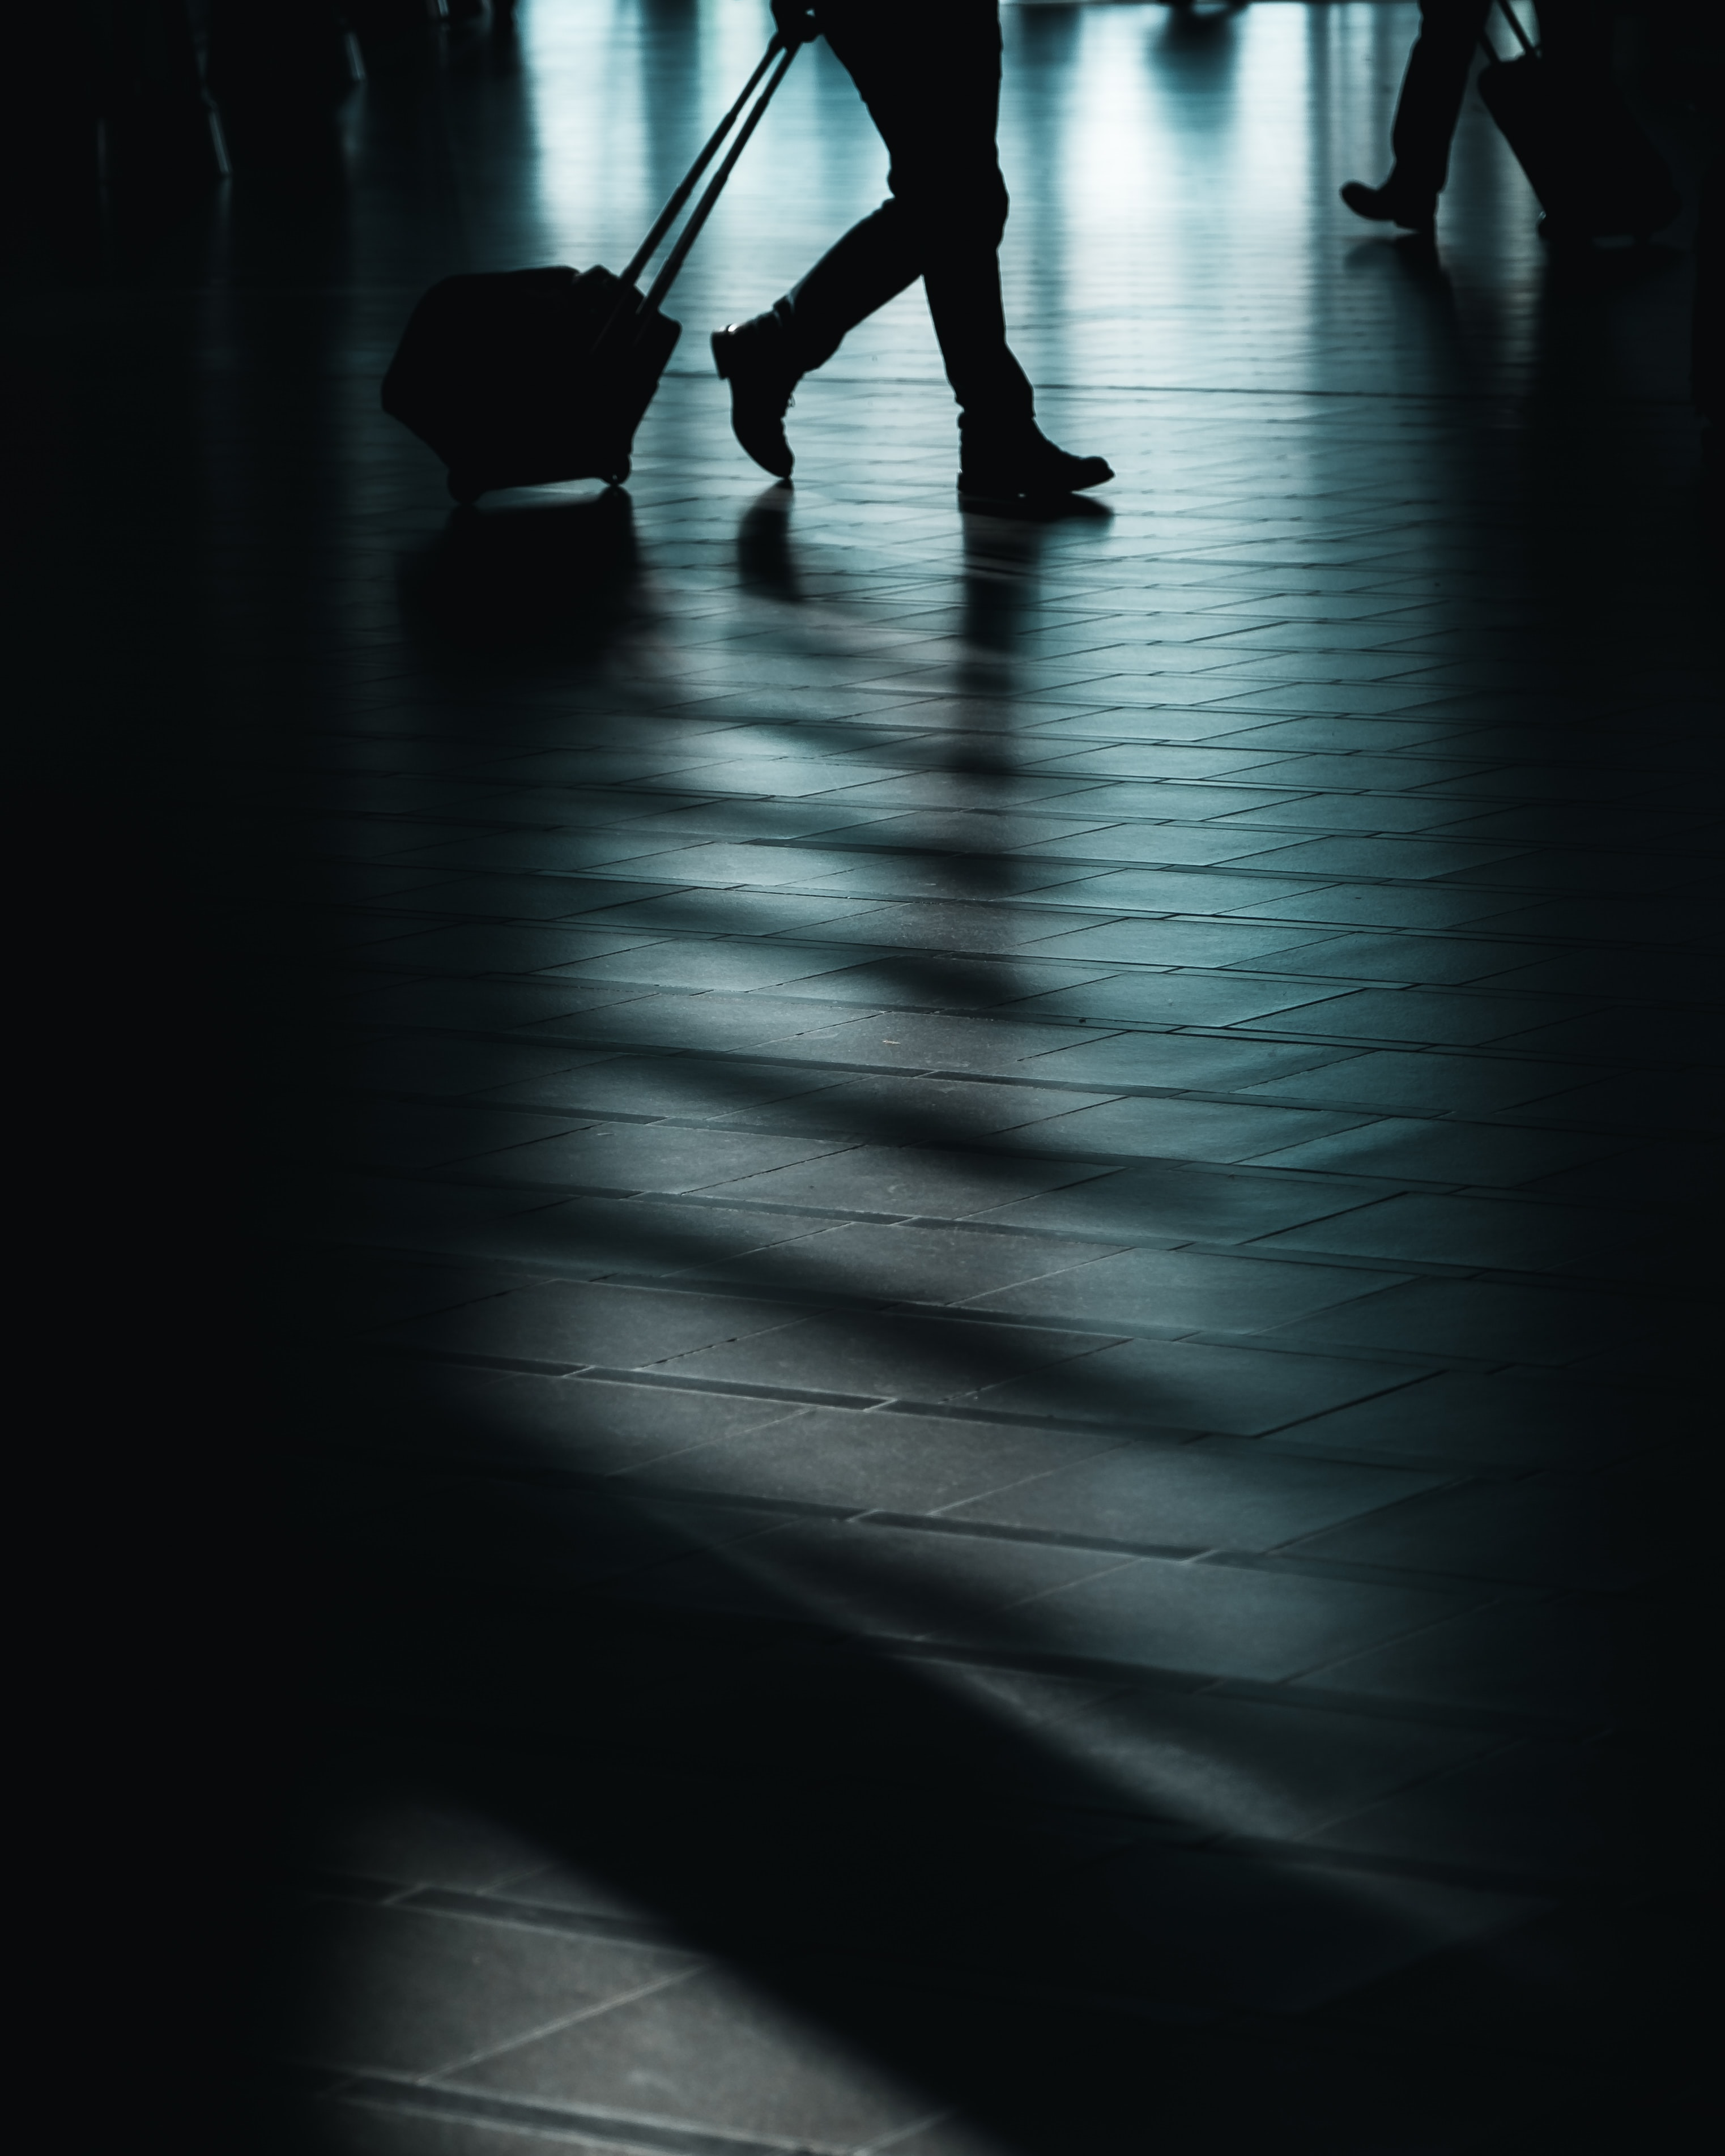 silhouette of man walking with luggage